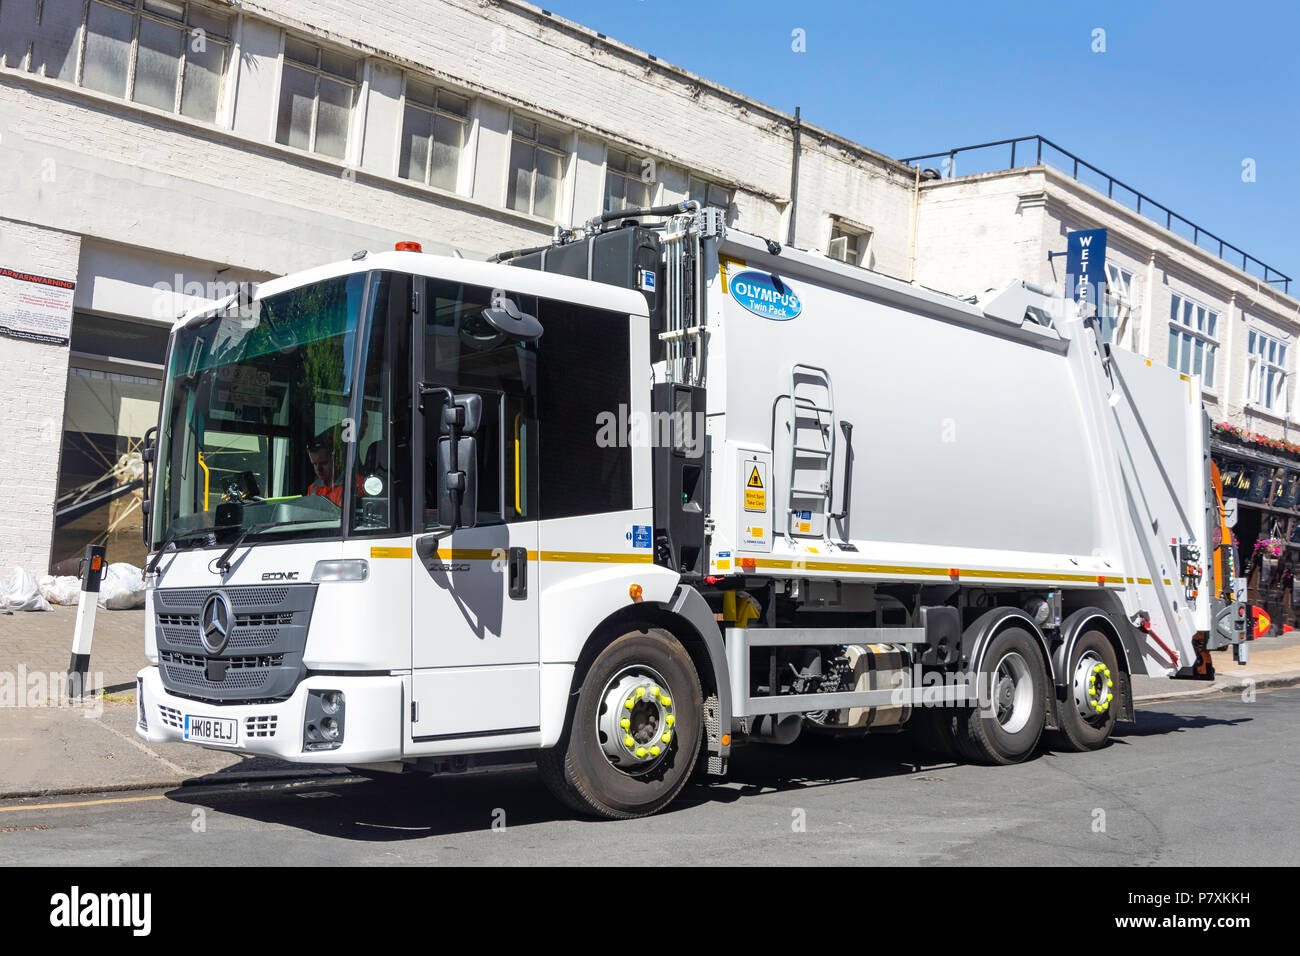 Mercedes Econic refuse truck, Russell Road, Wimbledon, London Borough of Merton, Greater London, England, United Kingdom - Stock Image